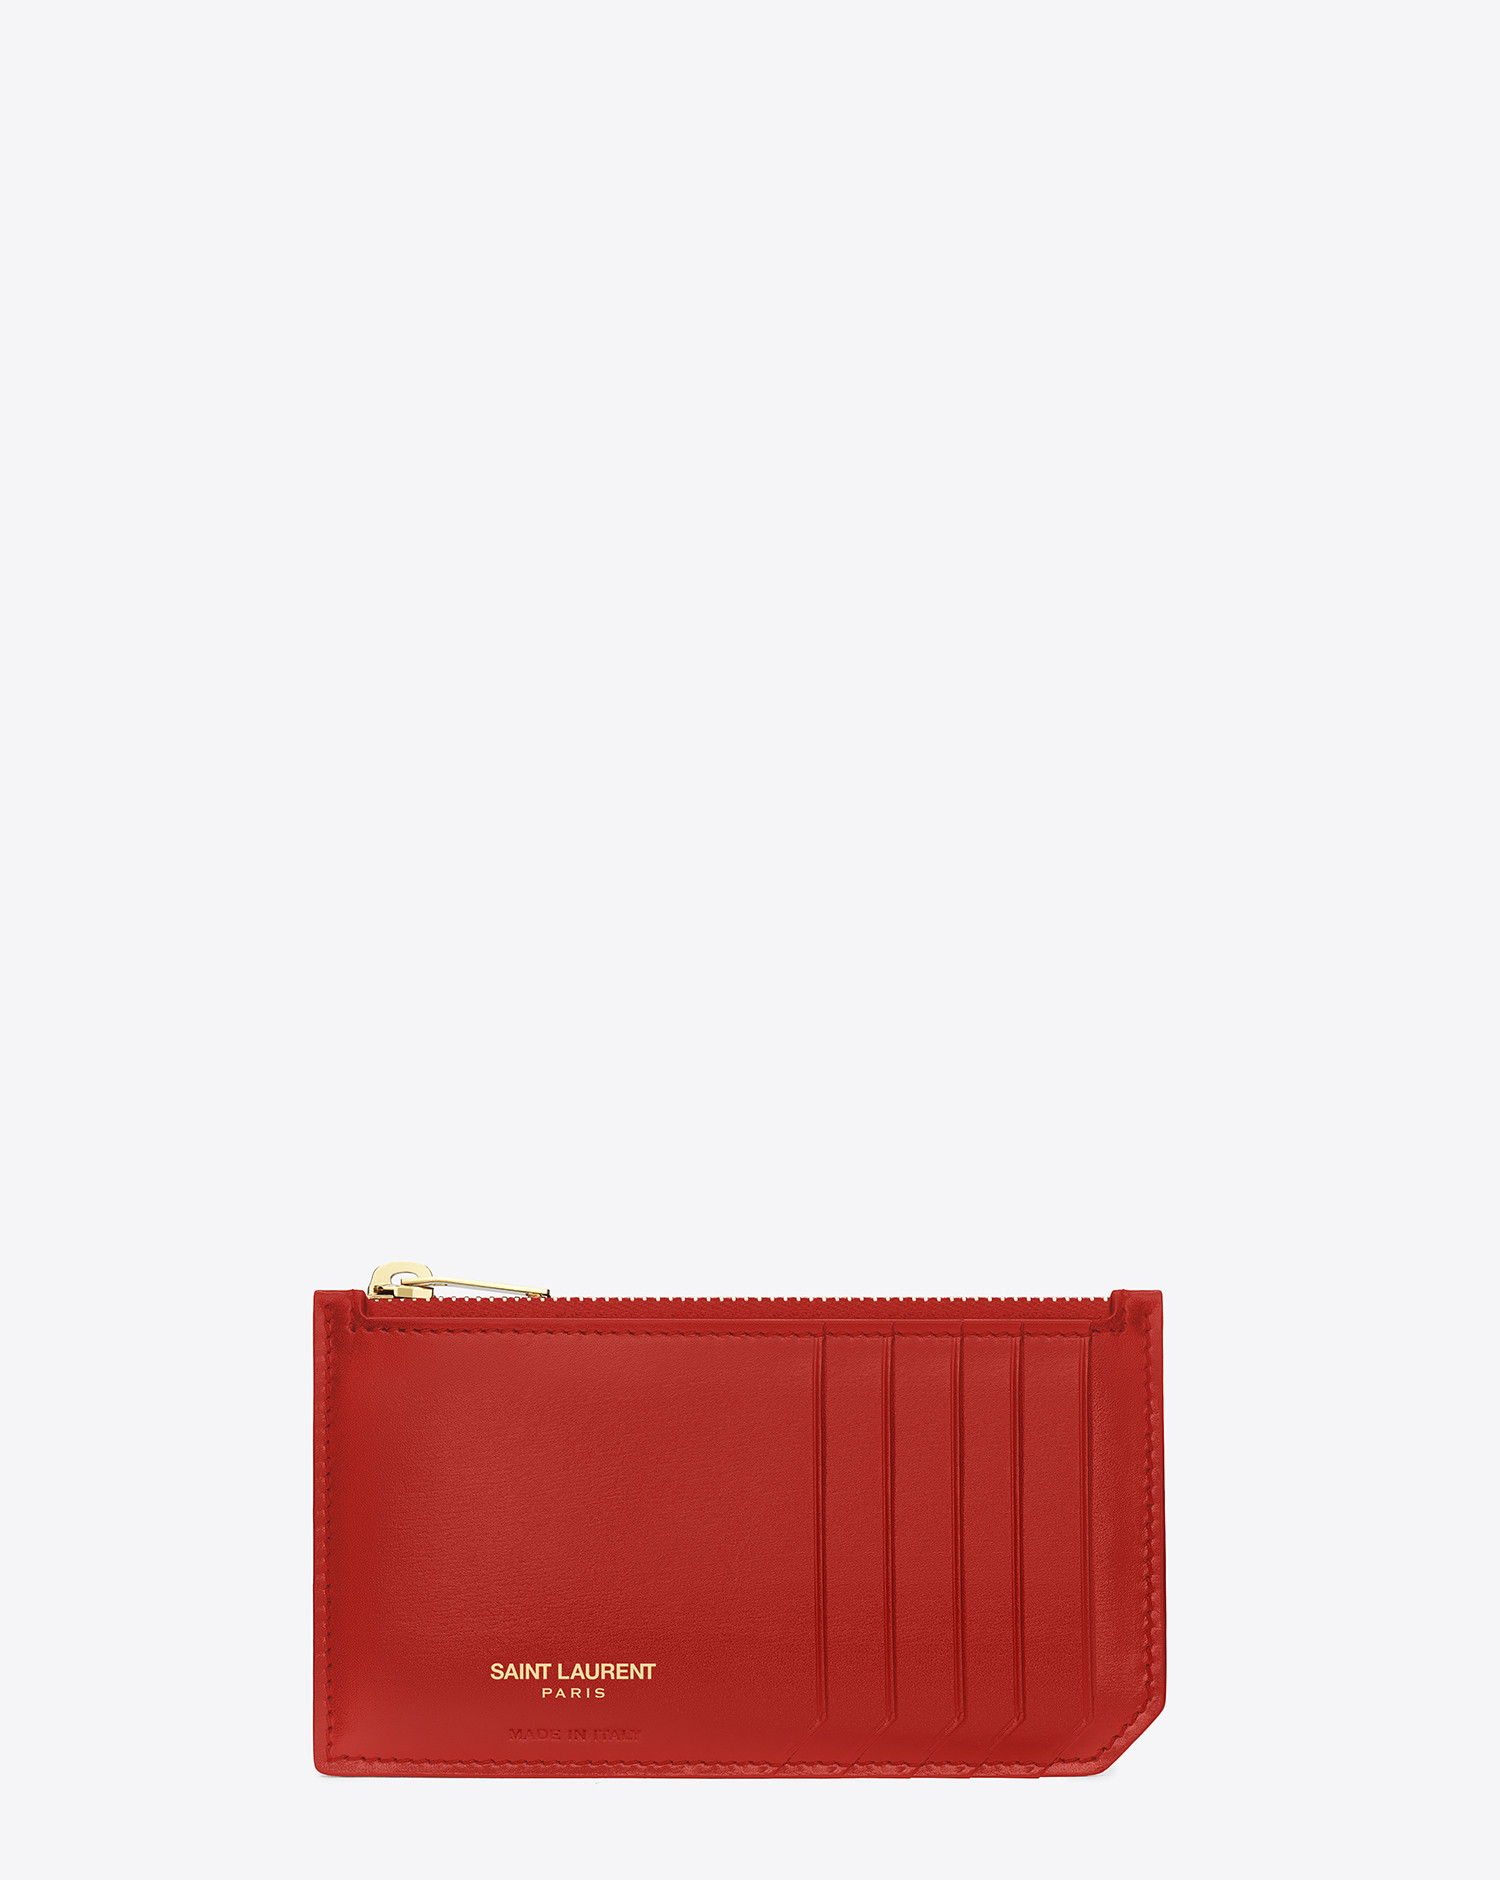 a1ebf840d83 Saint Laurent Classic Paris 5 Fragments Zip Pouch In Red Leather in ...